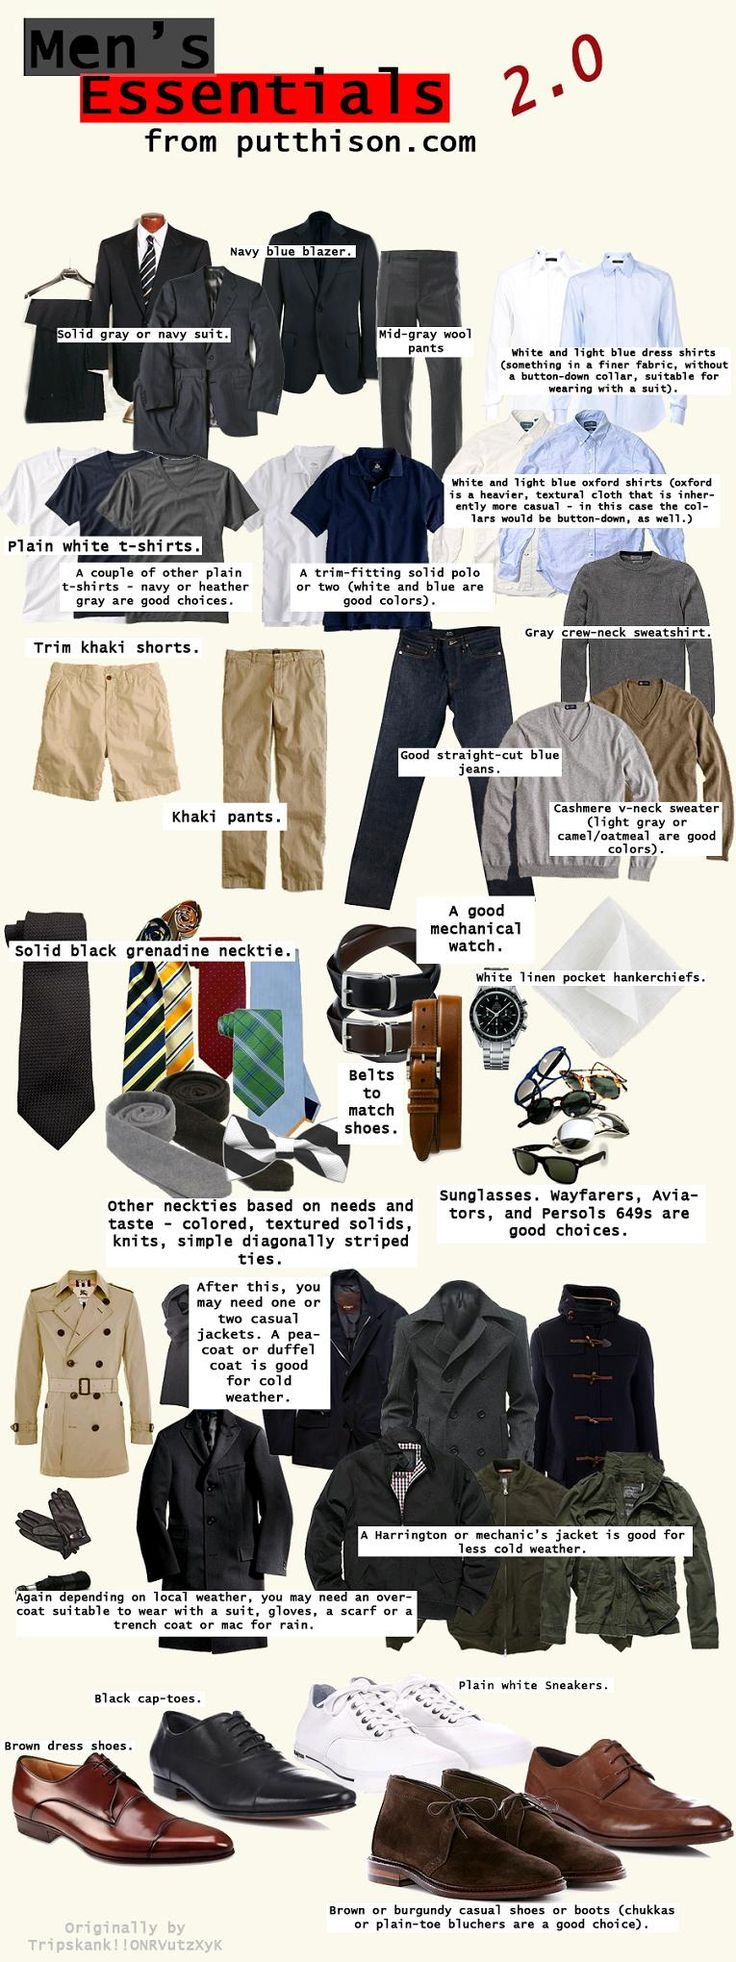 Men's Essentials 2.0.